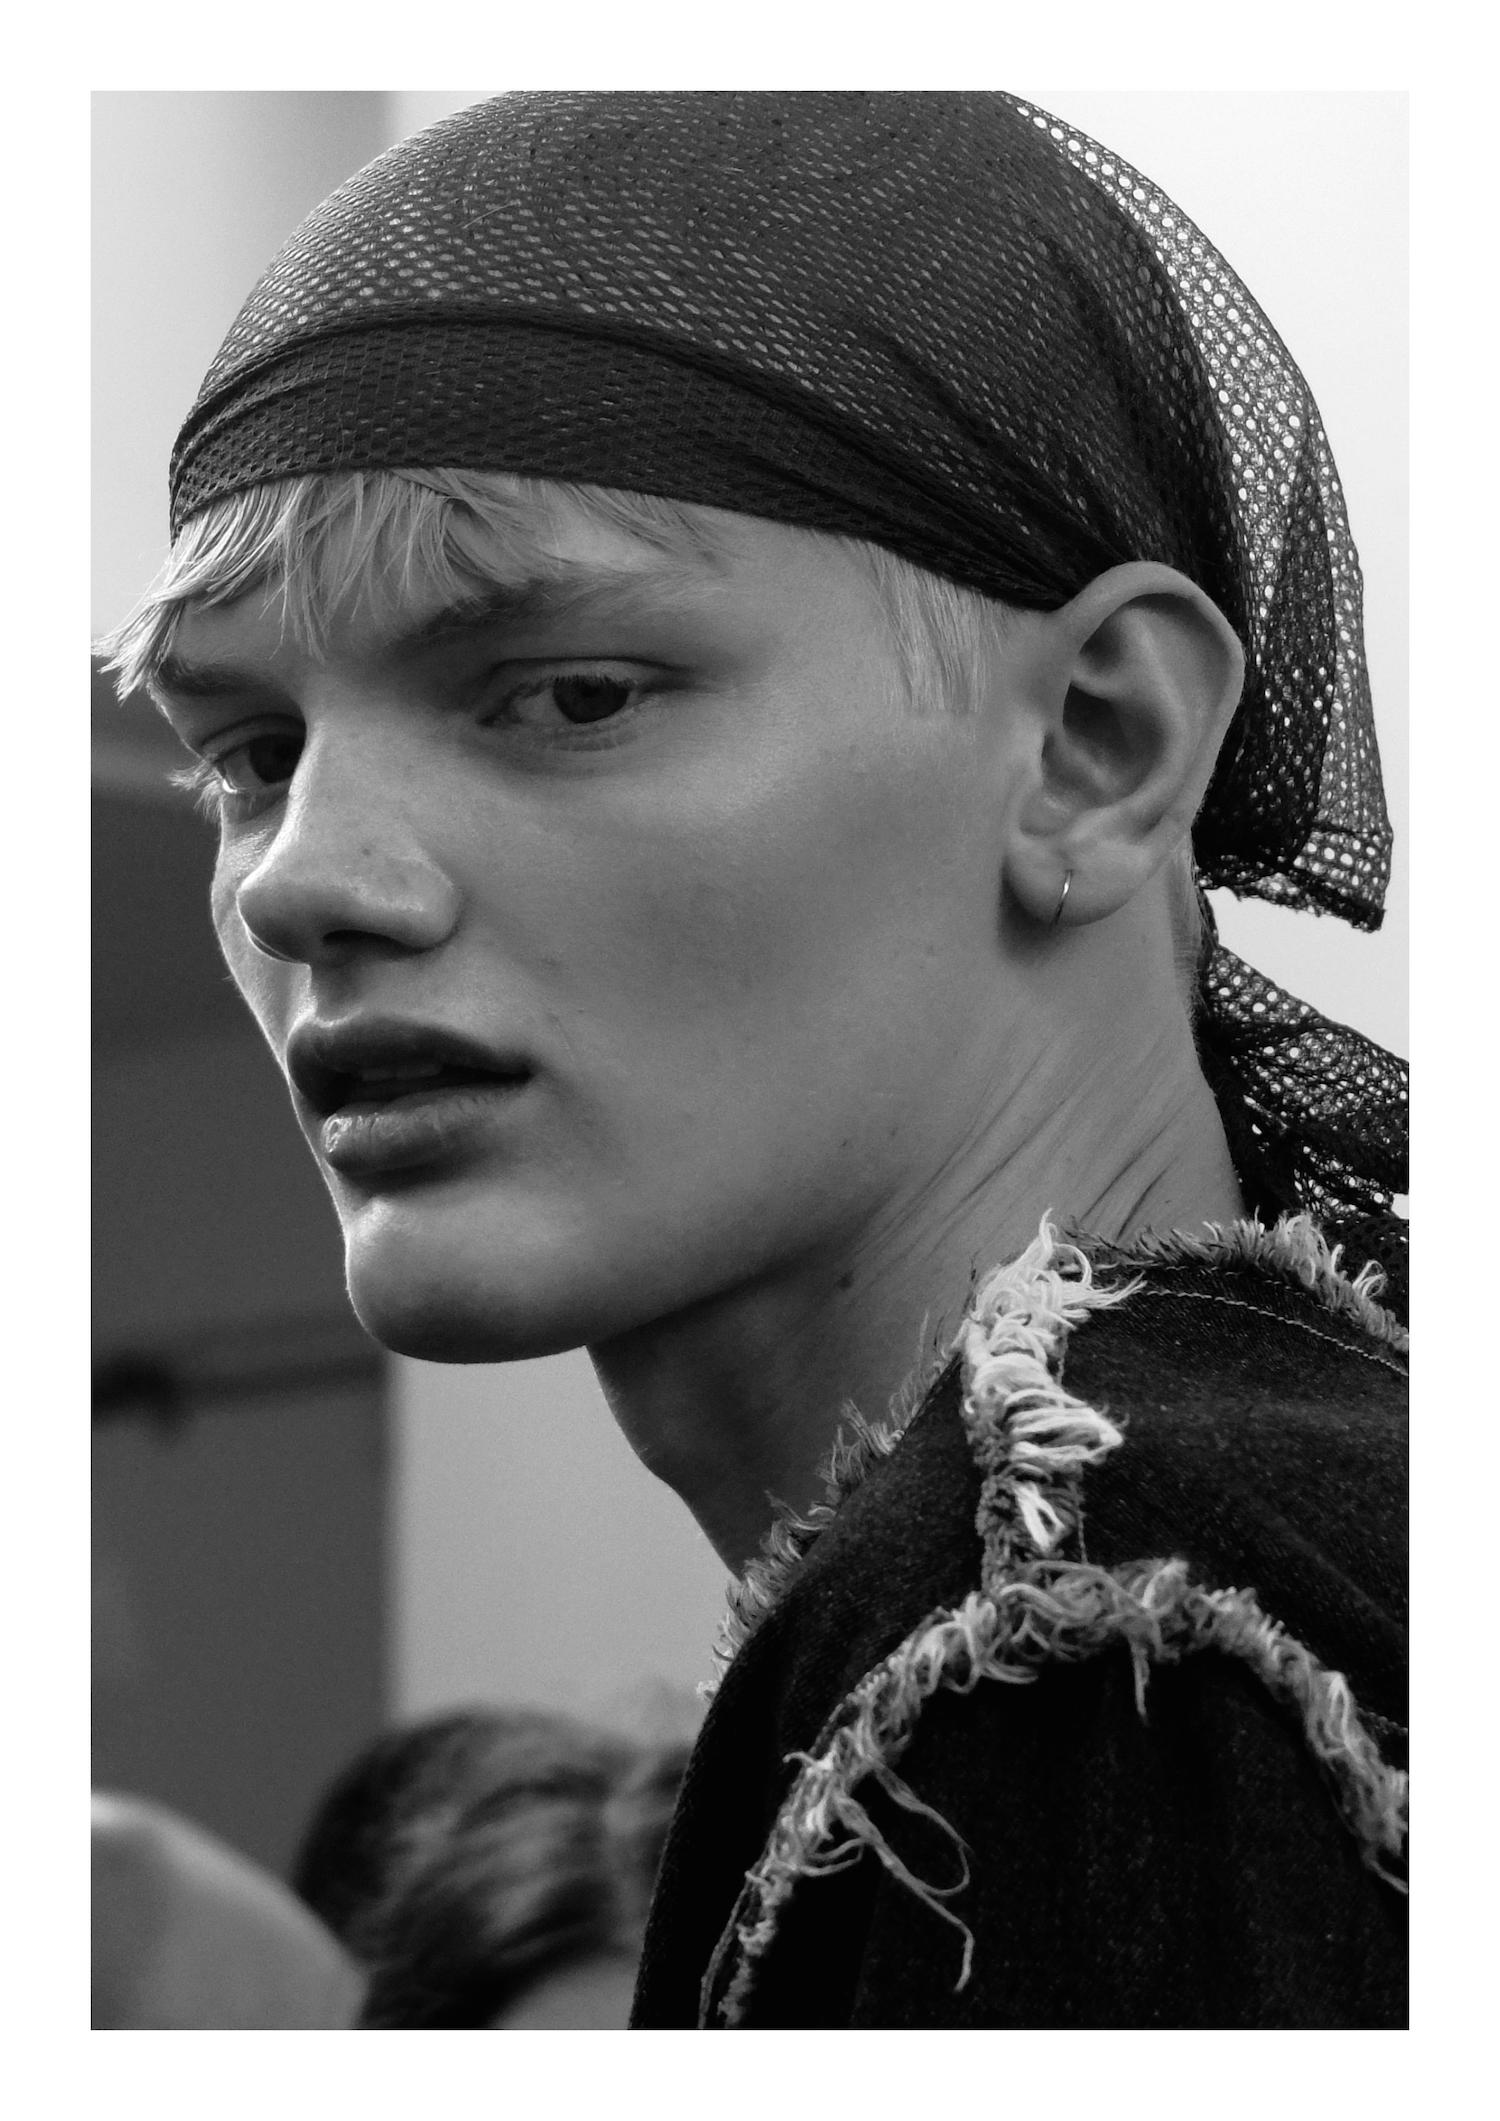 Backstage_SS17_Paris_Lisa_Lapierre_Behind_The_Blinds_06.jpg